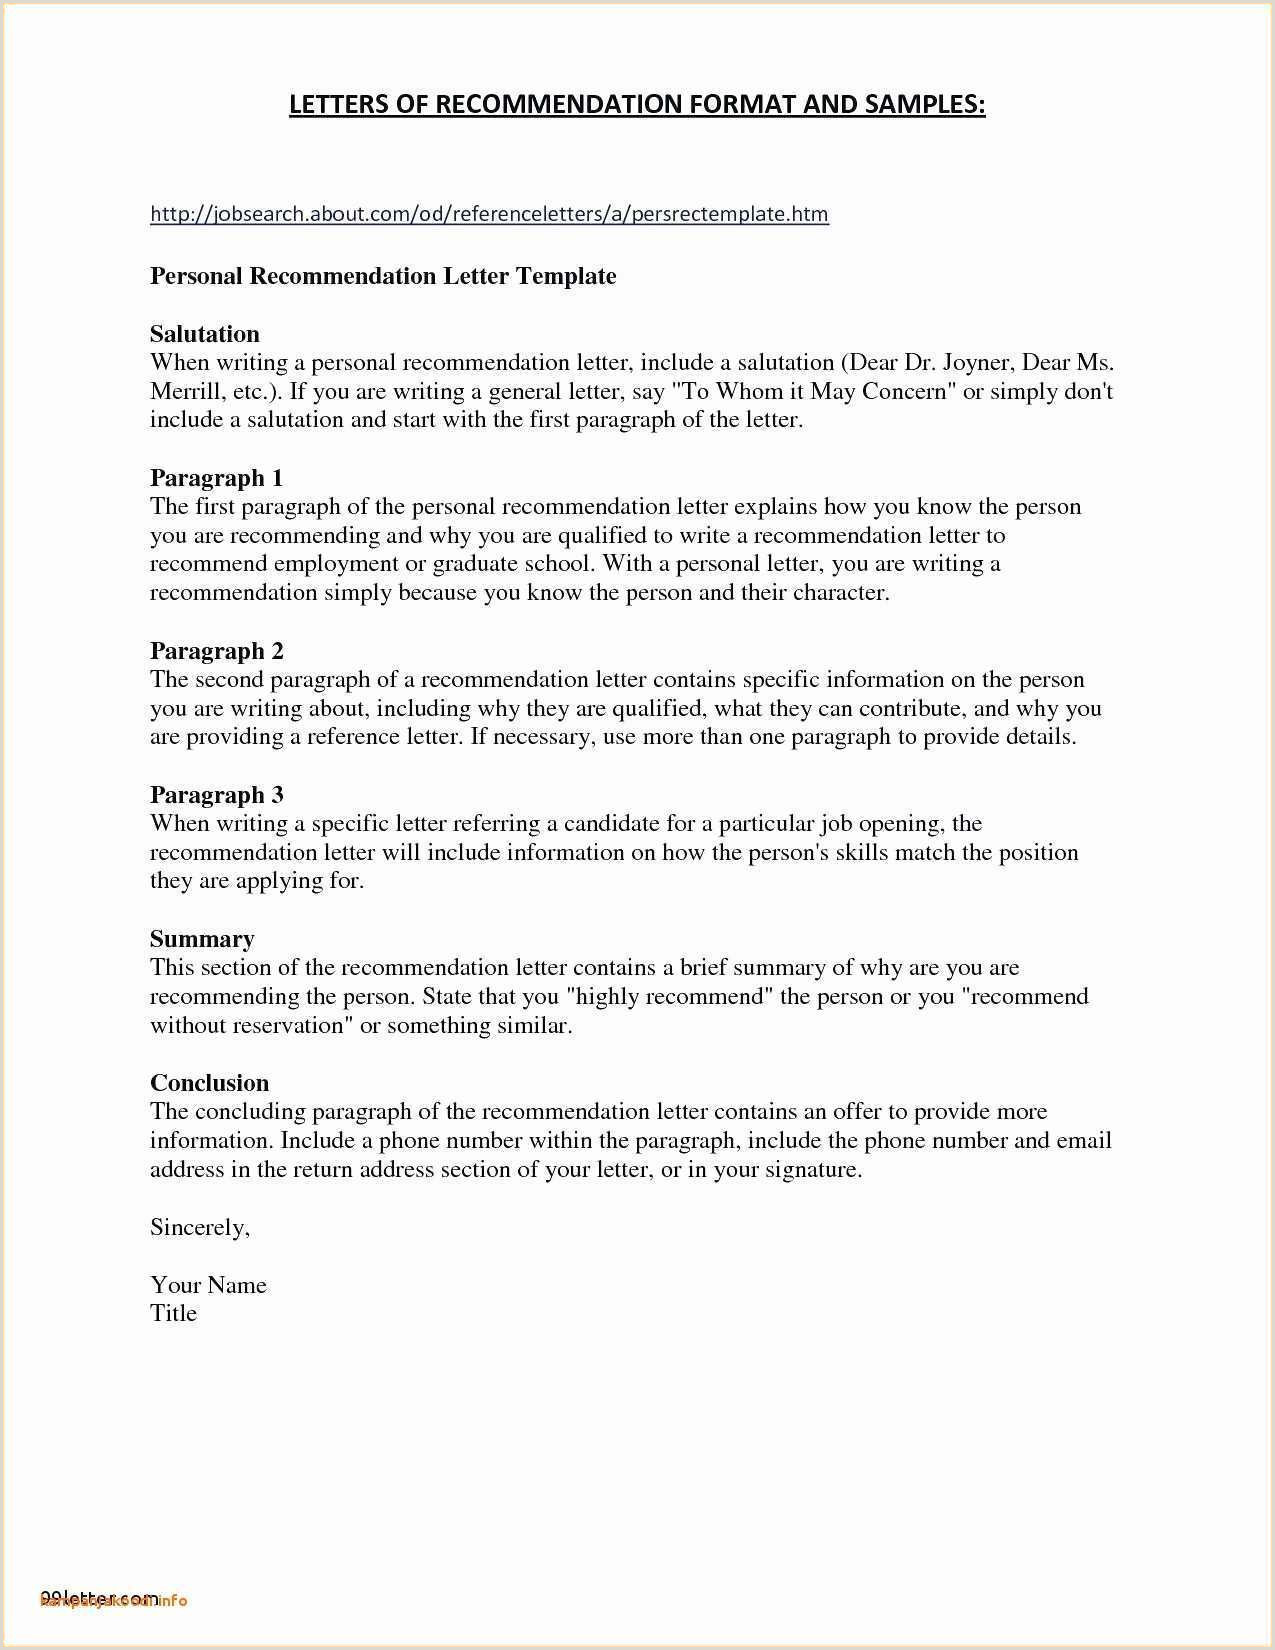 023 Business Request Letter Template Requesting Information